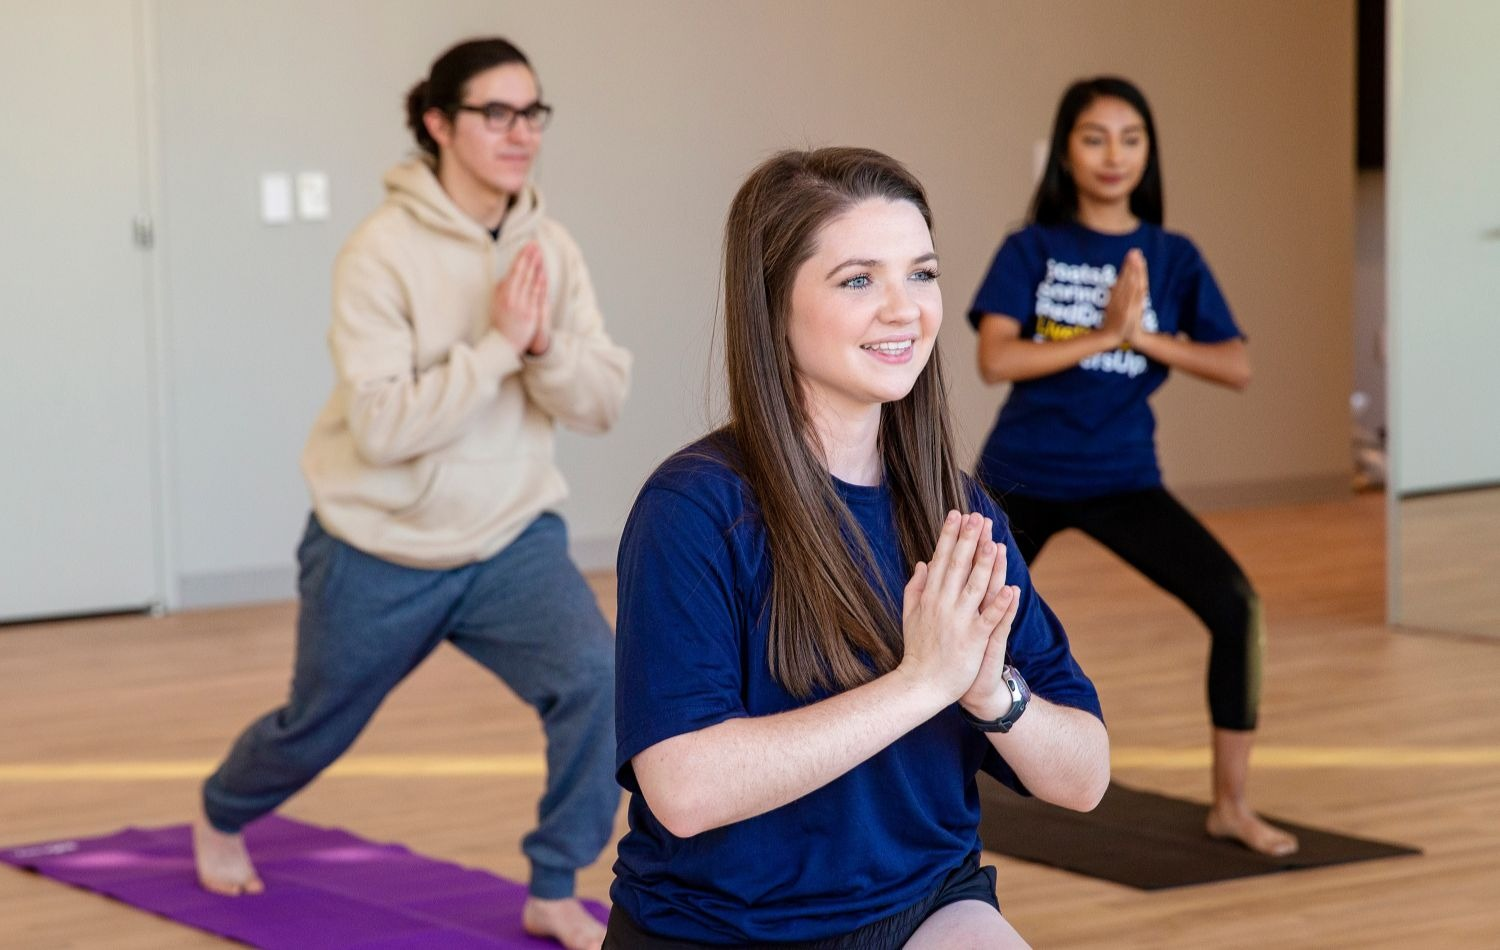 Students at St. Edward's relax with yoga